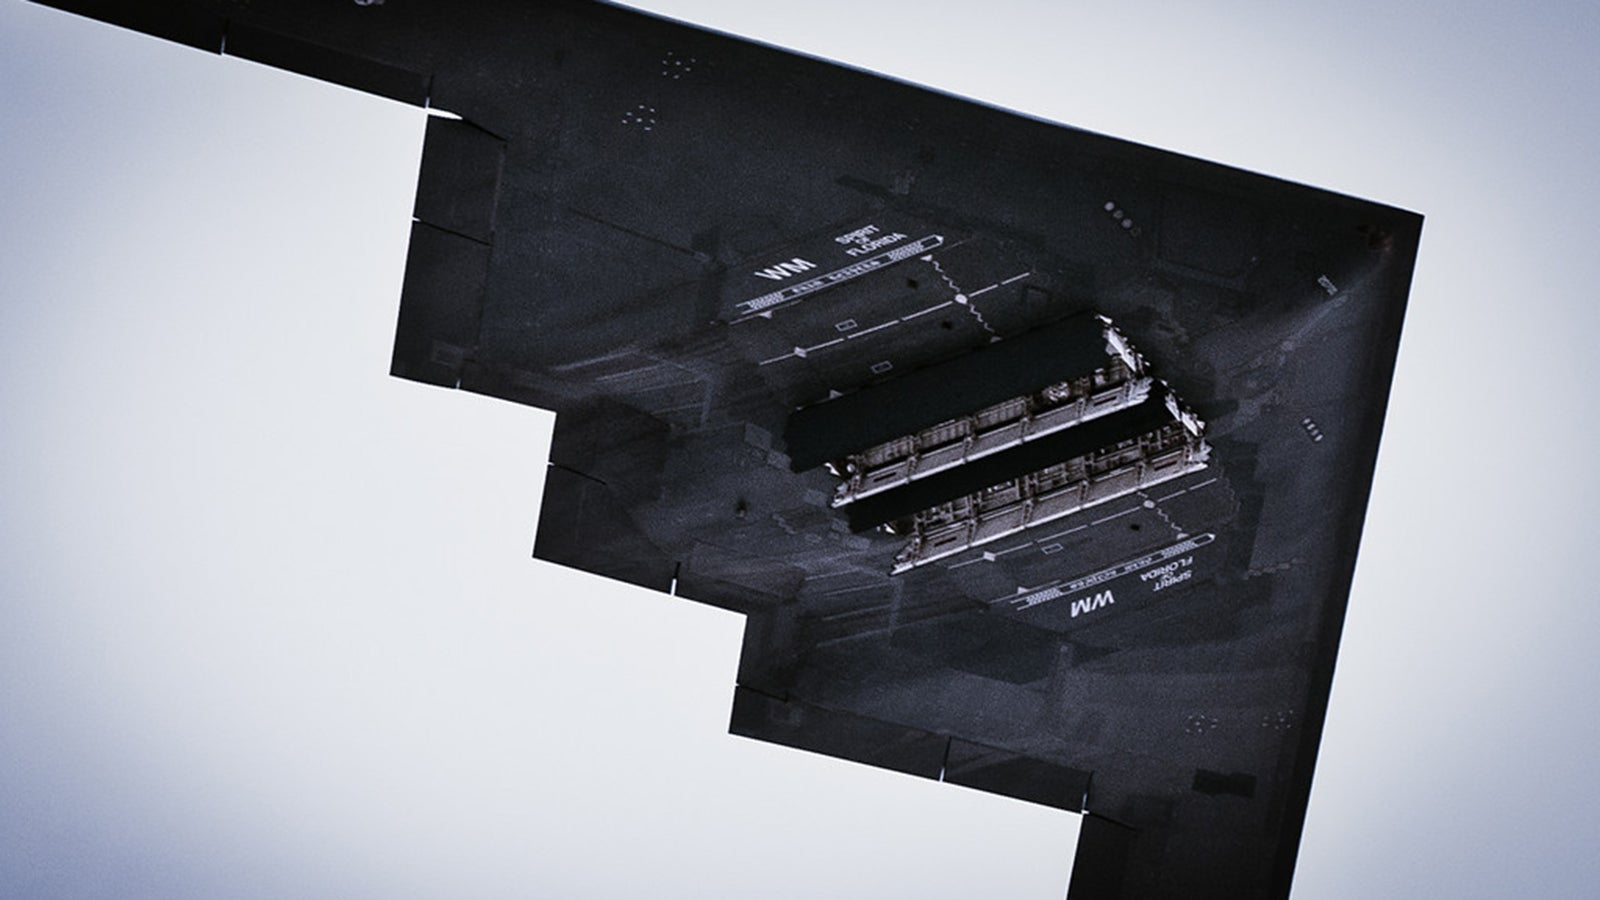 The 1989 B-2 bomber still feels like a plane from the future -- or a UFO